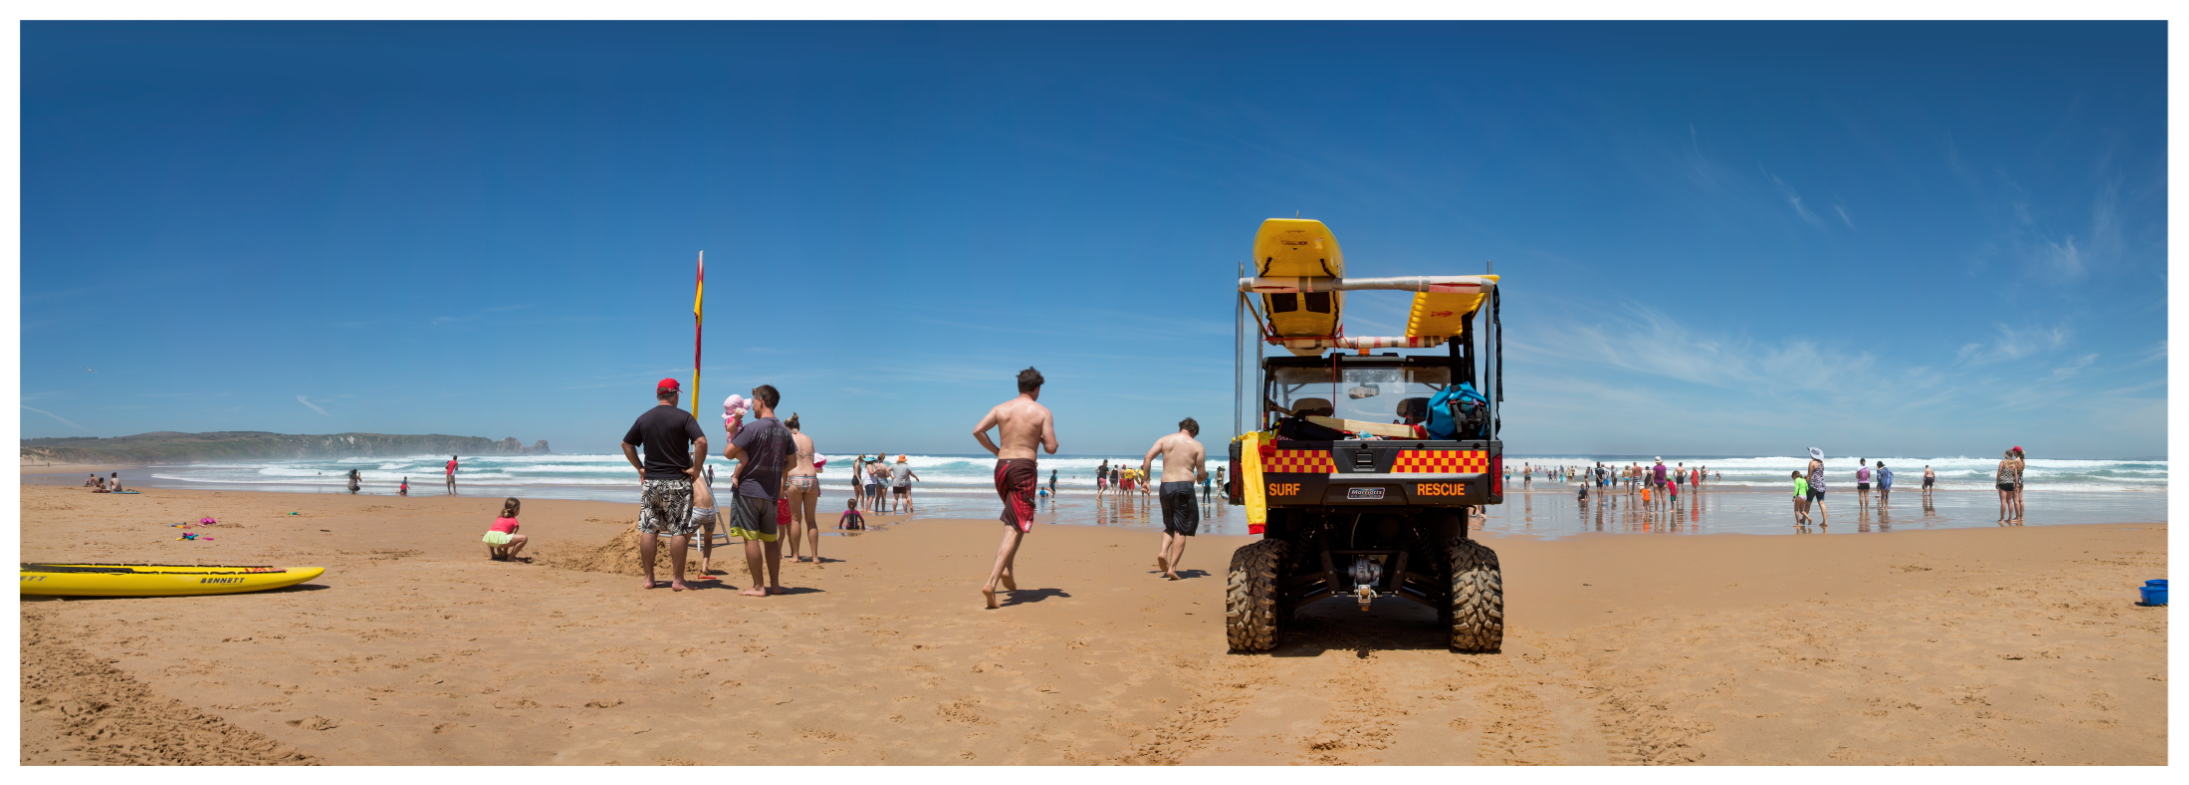 Surf Rescue with runners - Woolamai Beach, Phillip Island, Victoria